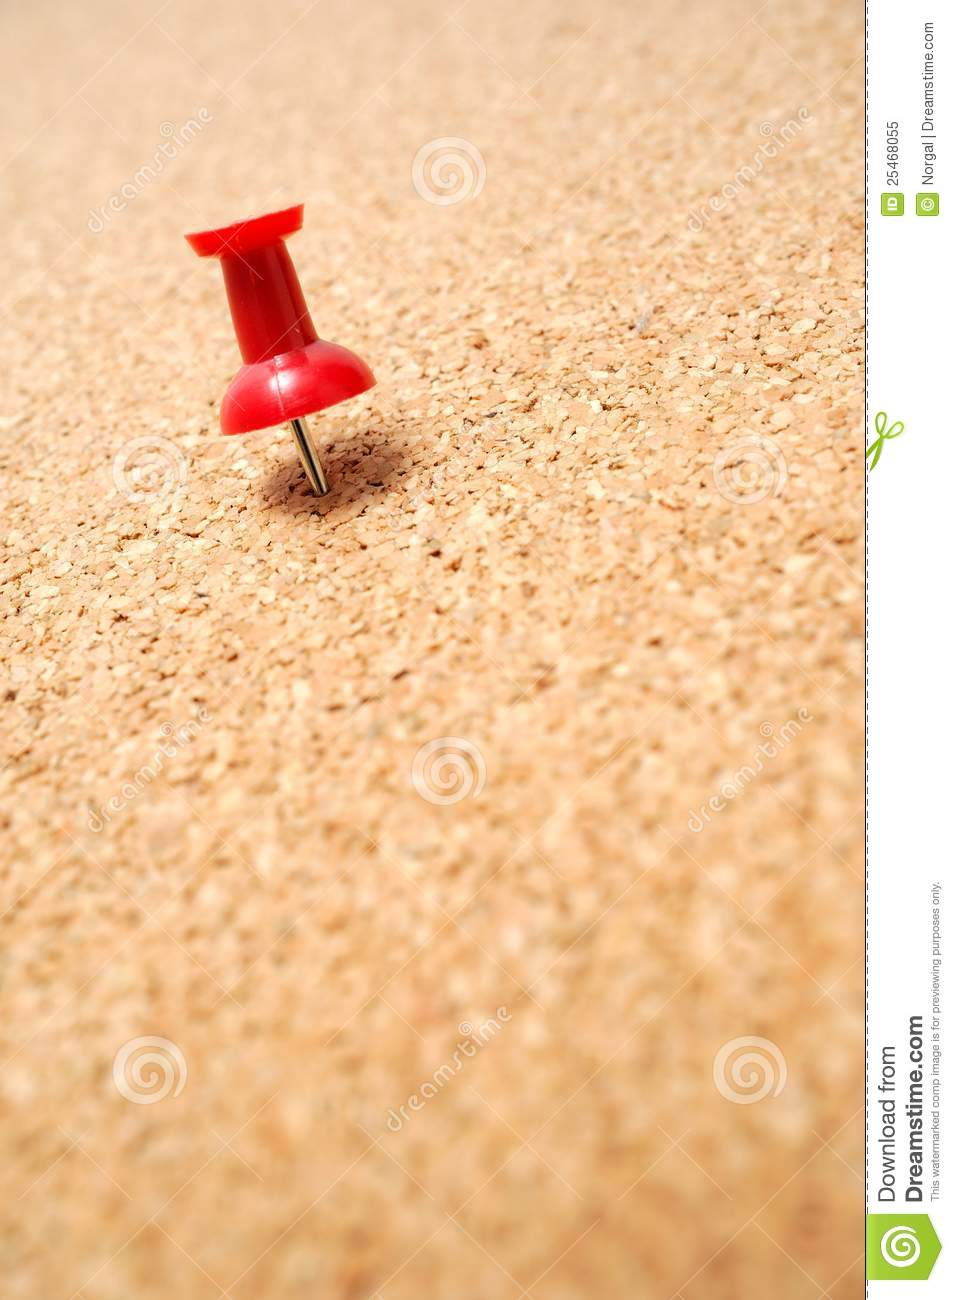 red thumbtack on cork board royalty free stock photo